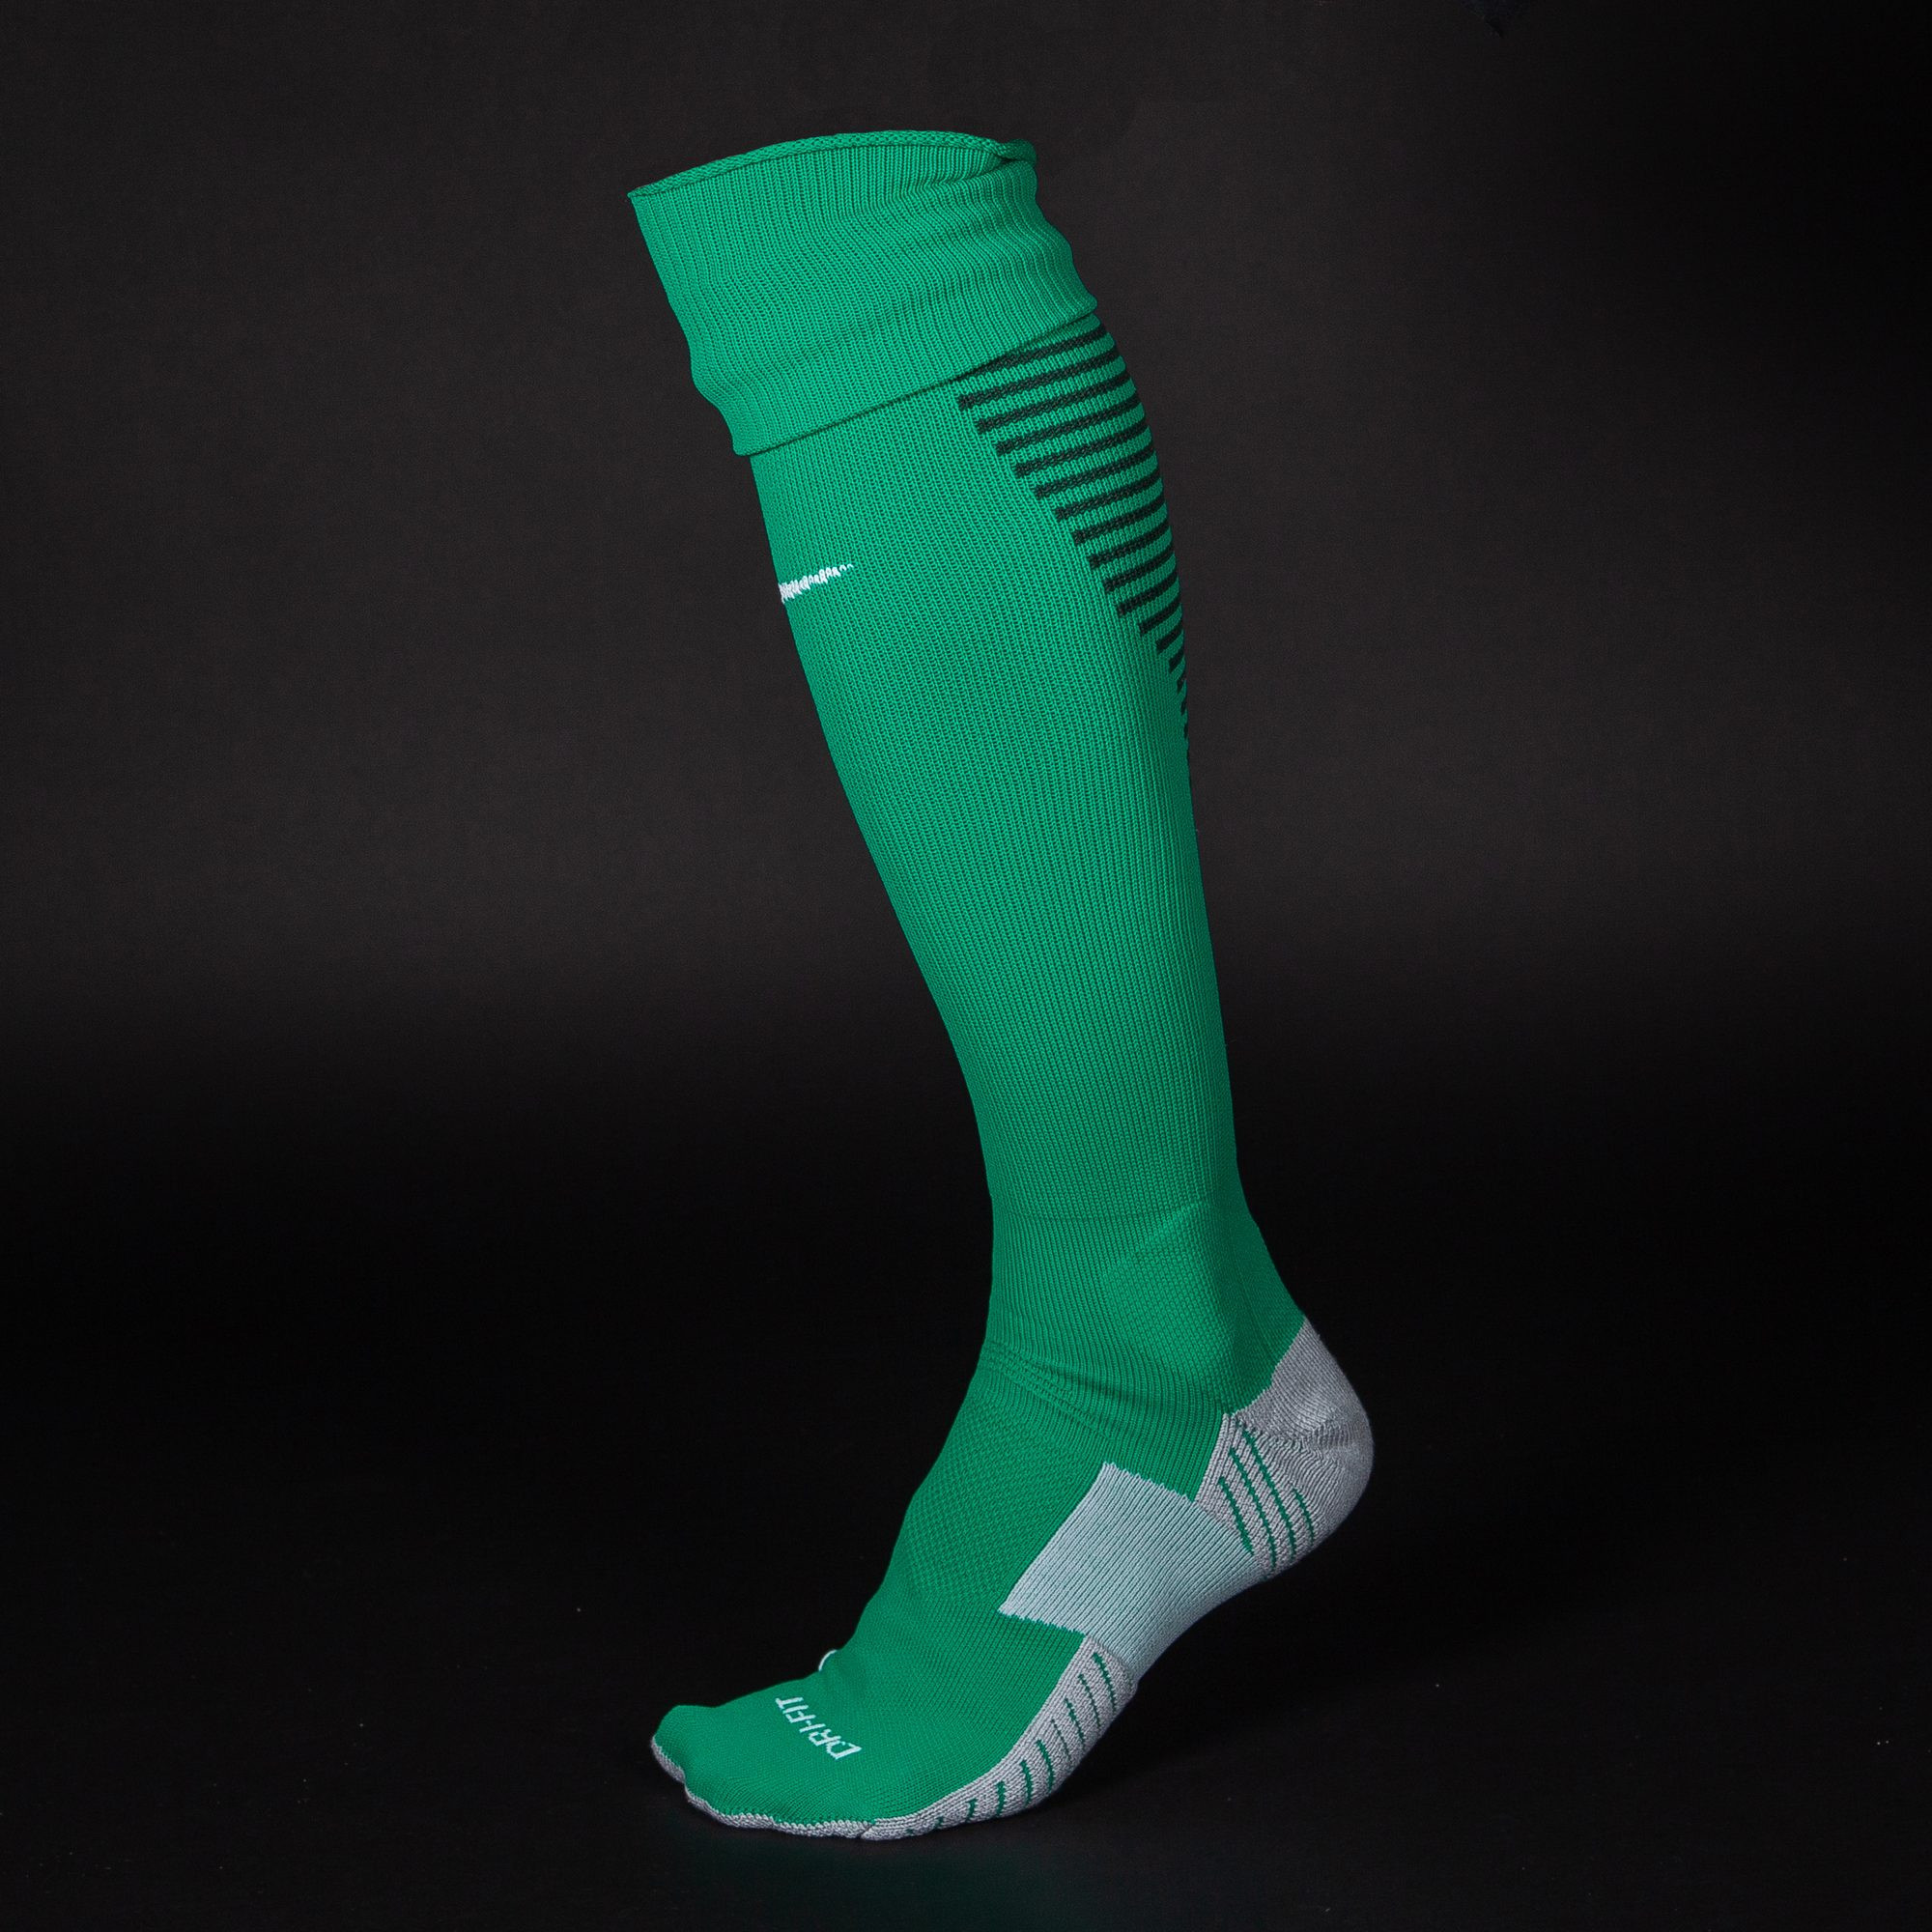 Гетры Unisex Nike Team MatchFit Over-the-Calf Football Sock